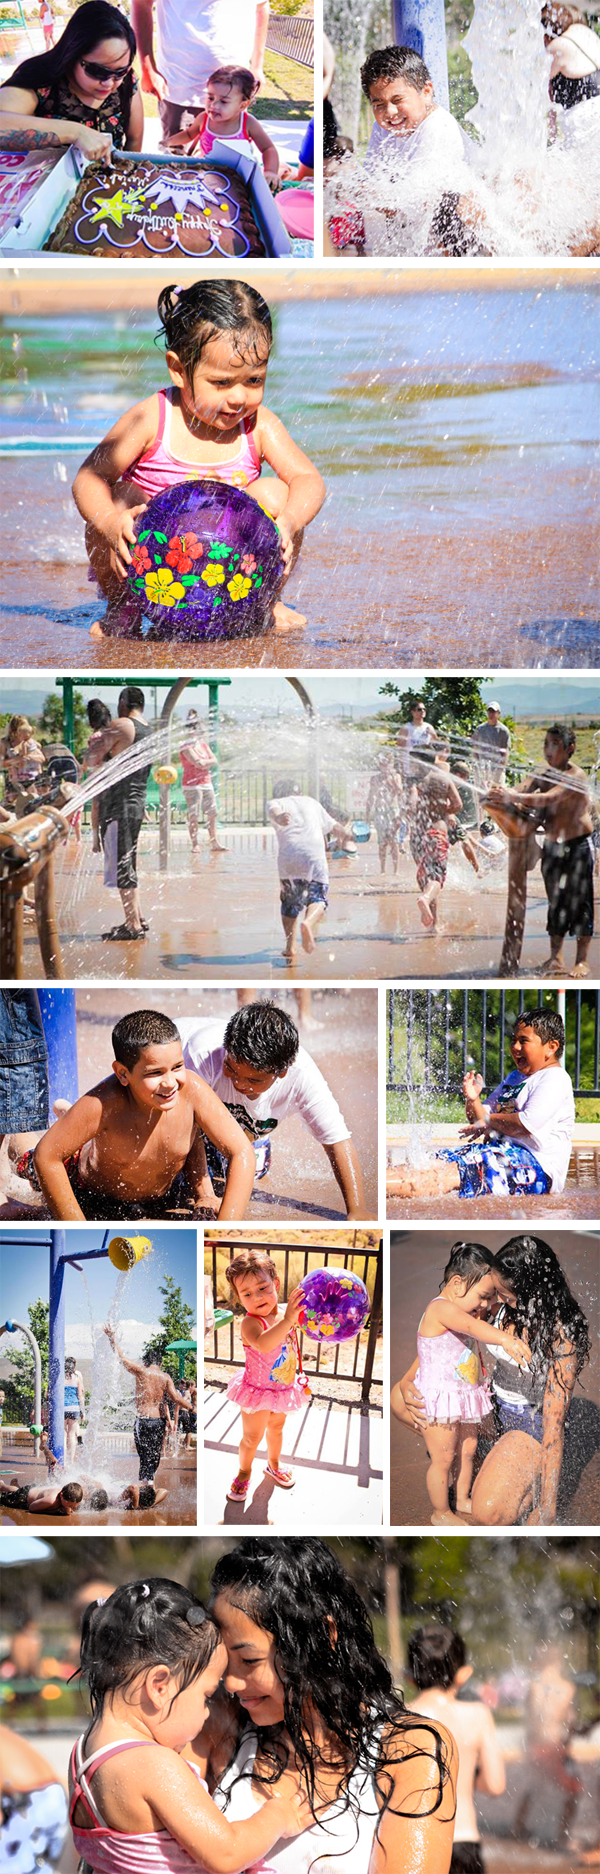 water-play-park-dax-victorino-films2